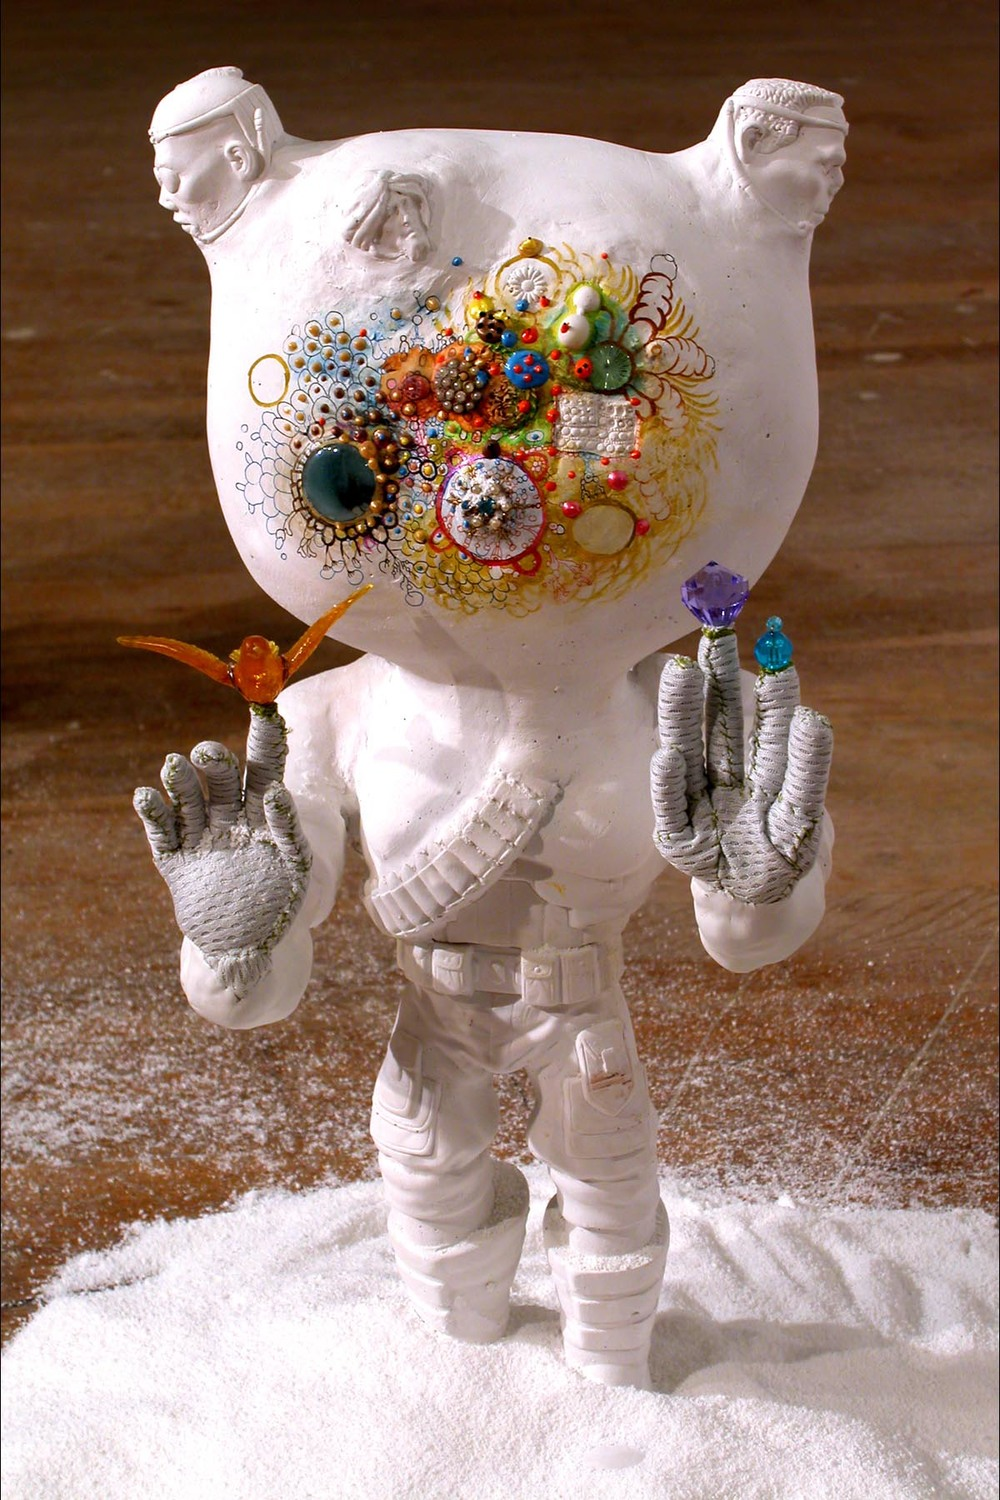 Extreme Soldier (Nature) , 2004.  Installed at Living Arts, Tulsa, Oklahoma as part of  Too Much Candy .  Plaster, fly, plastic lens, gouache, acrylic paint, fabric, thread, beads, detergent. Variable dimensions, about 22 inches tall.